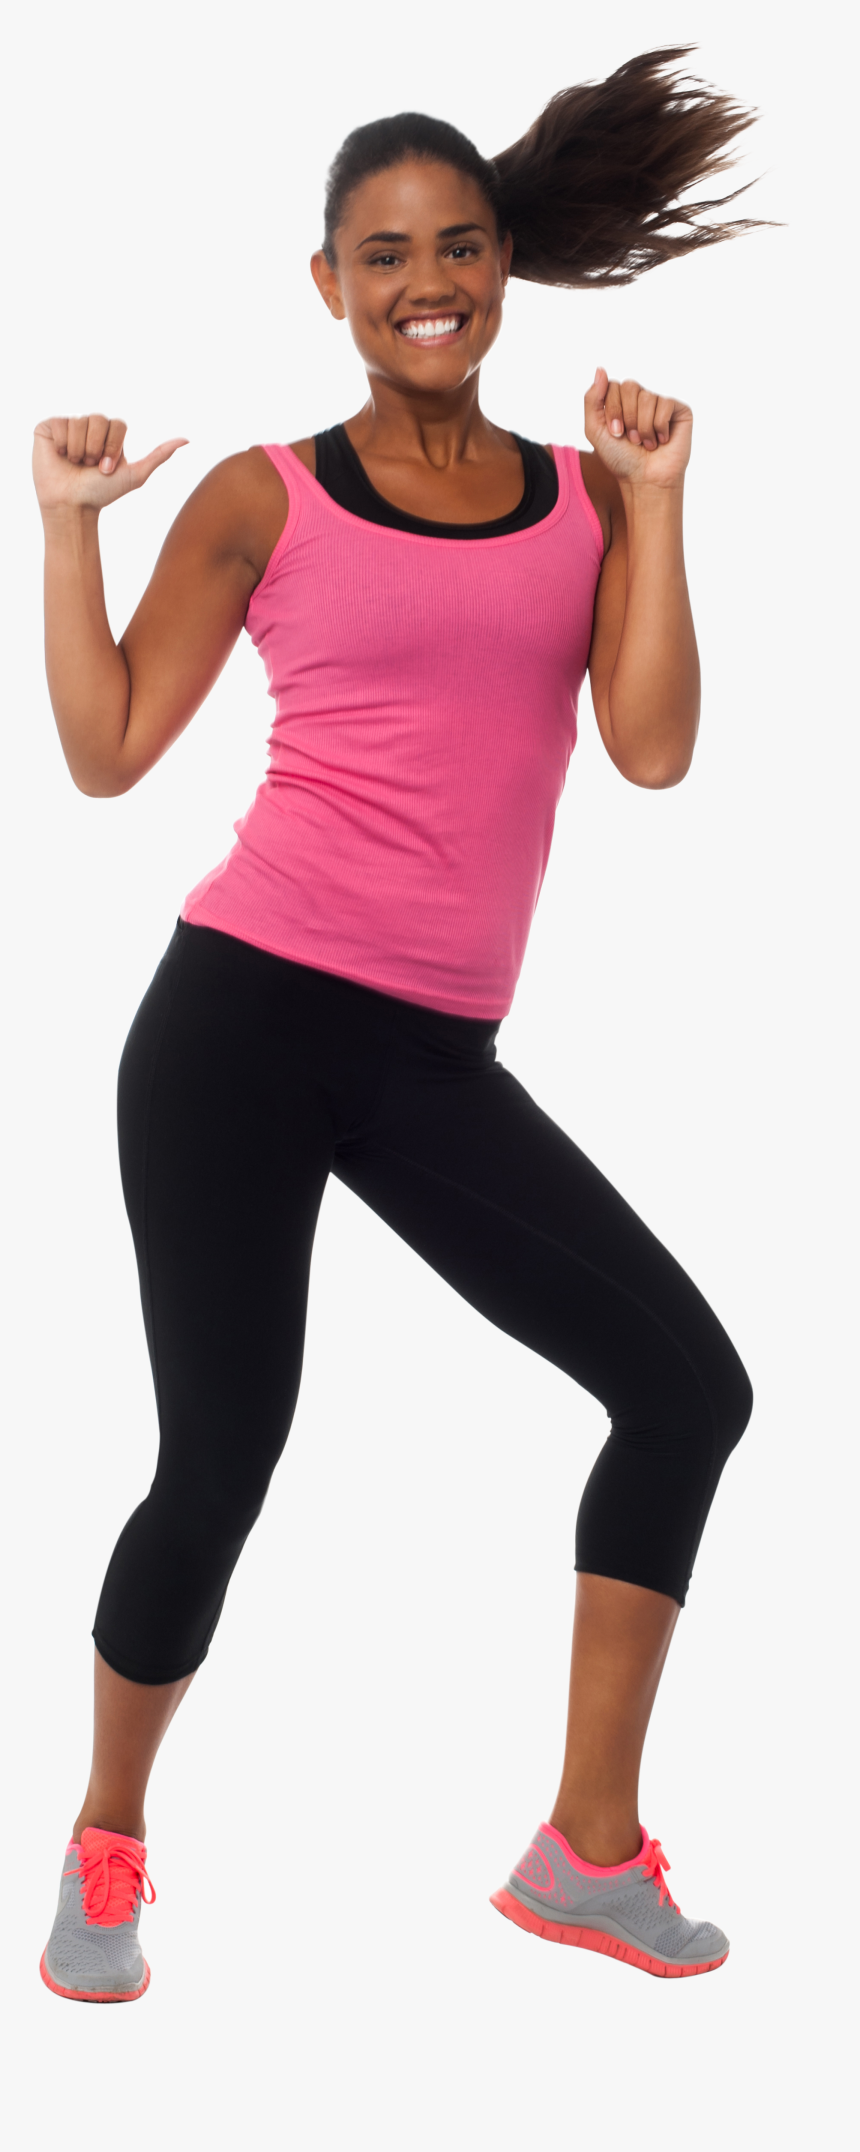 Girl Dancing Free Commercial Use Png Image - Woman Dancing Transparent Background, Png Download, Free Download